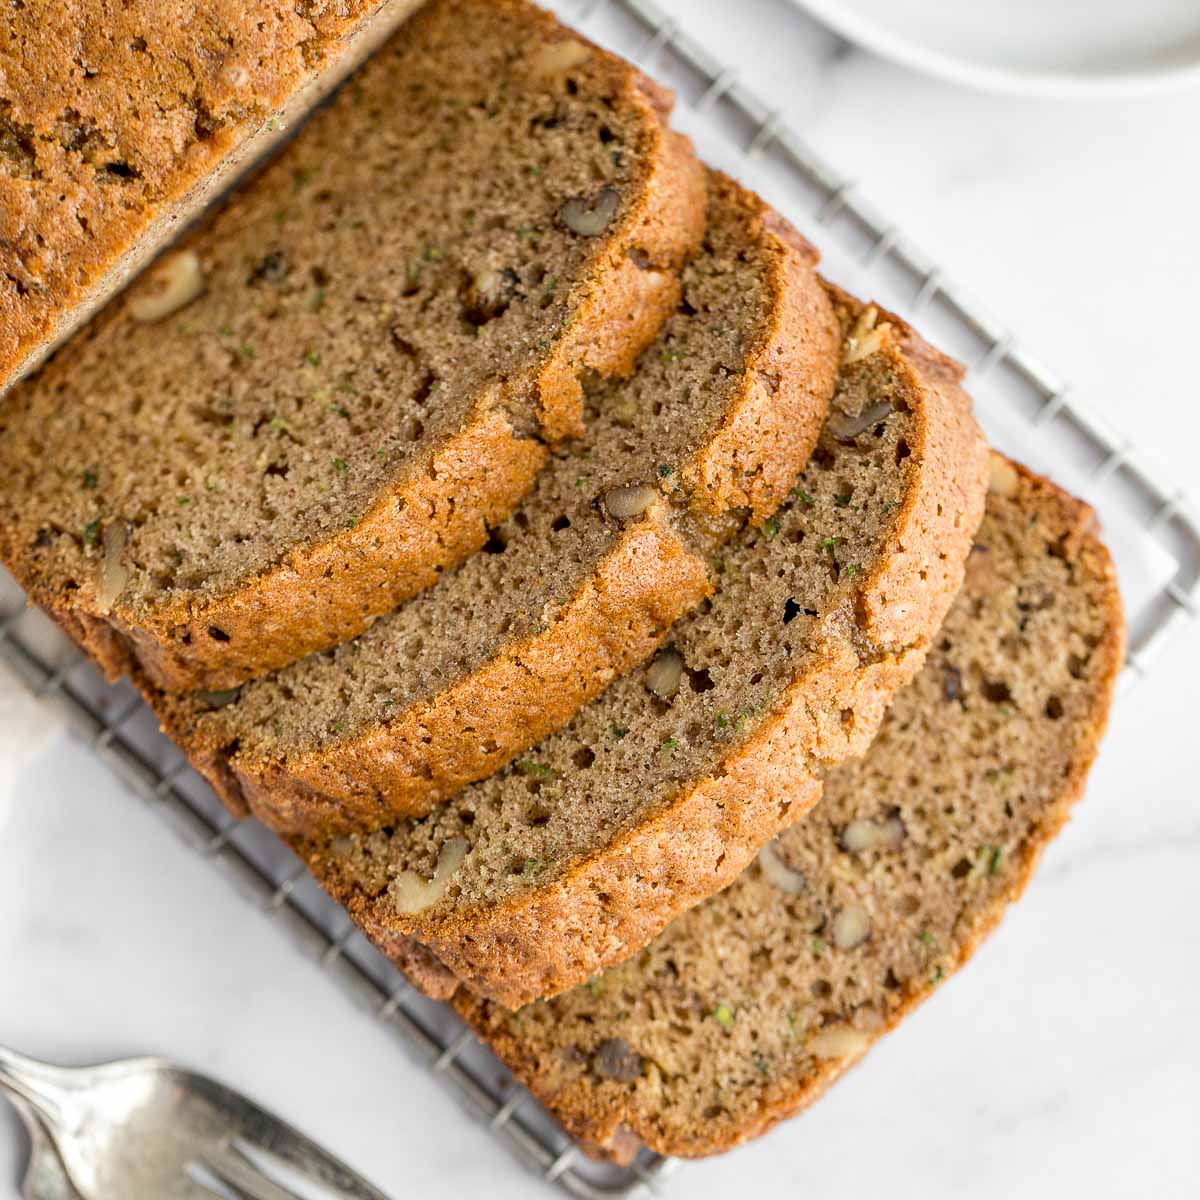 Classic Zucchini Bread Recipe (Best Ever!) - Live Well ...